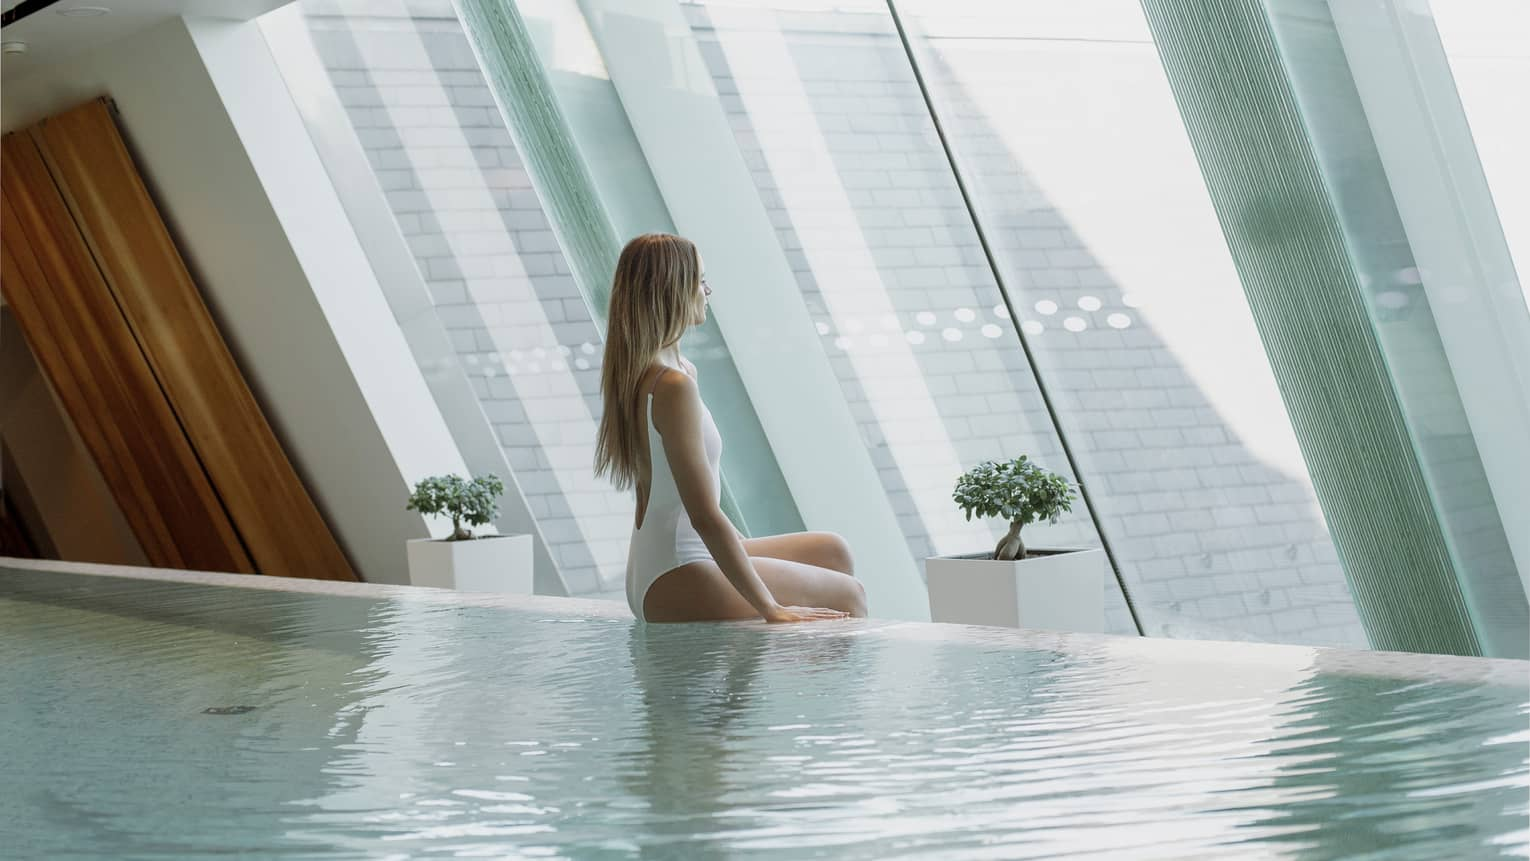 Woman wearing white swimsuit sits on edge of indoor swimming pool, looks out window